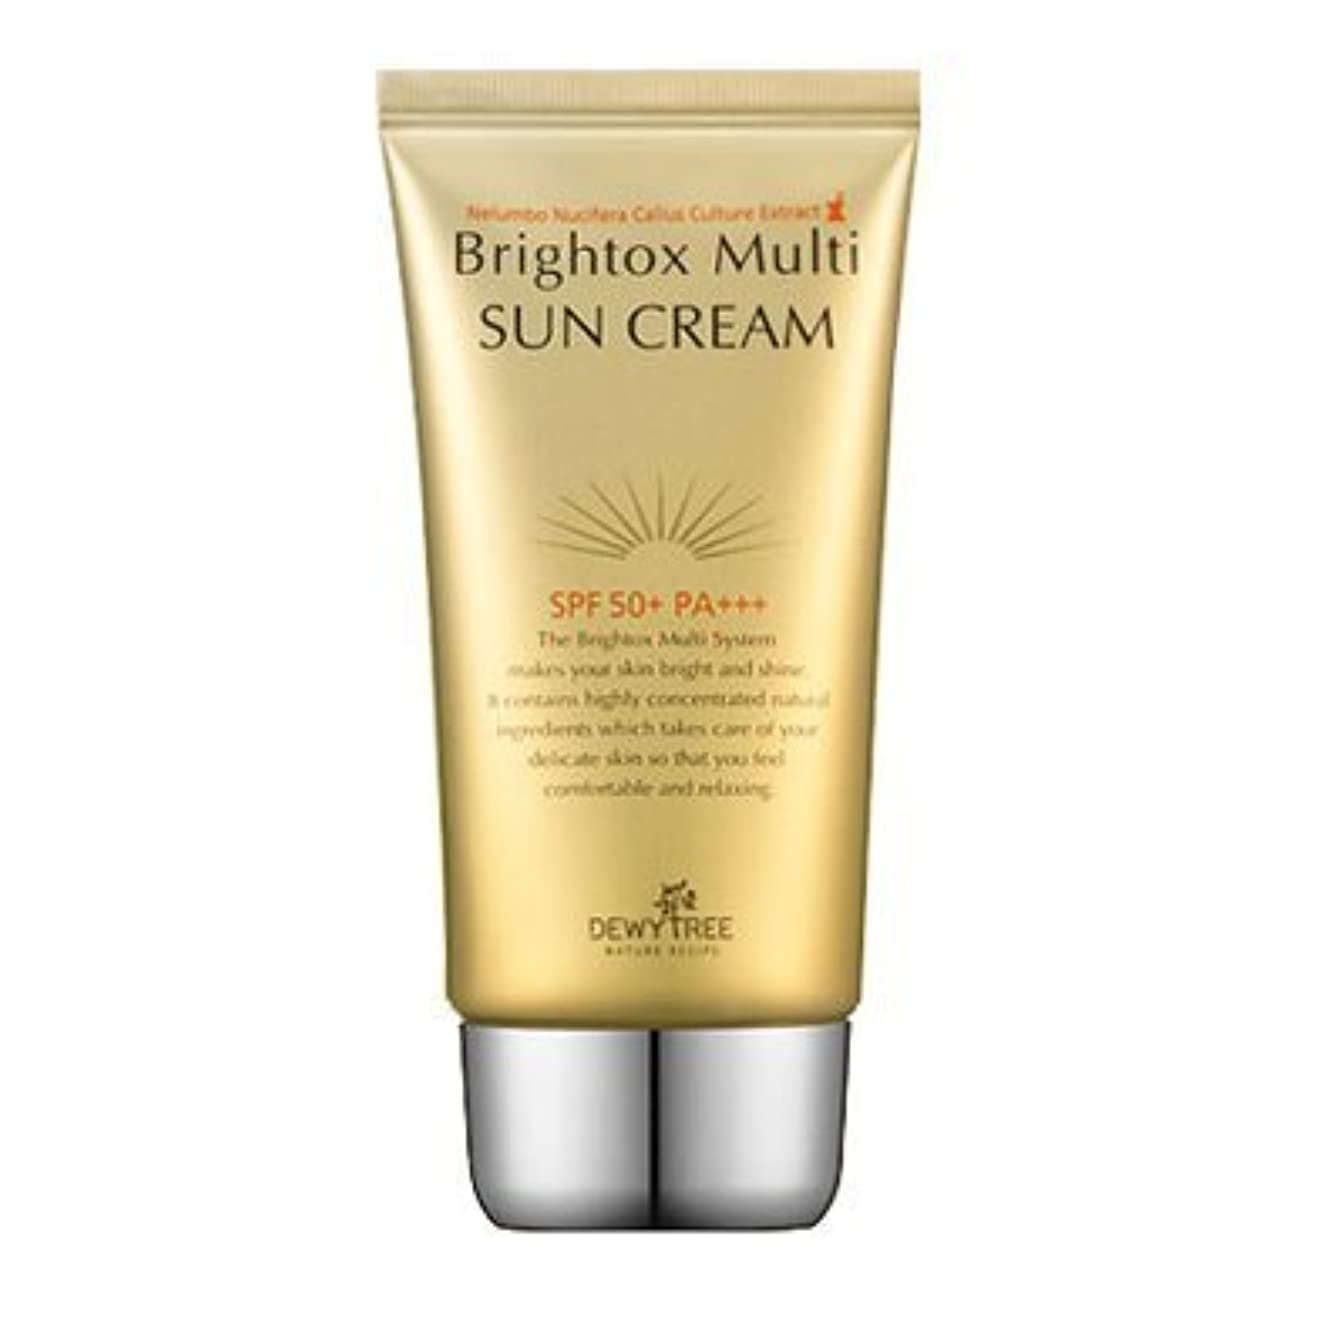 壊すお互い属するDewytree Brightox Multi SUN CREAM SPF50+, PA+++50ml